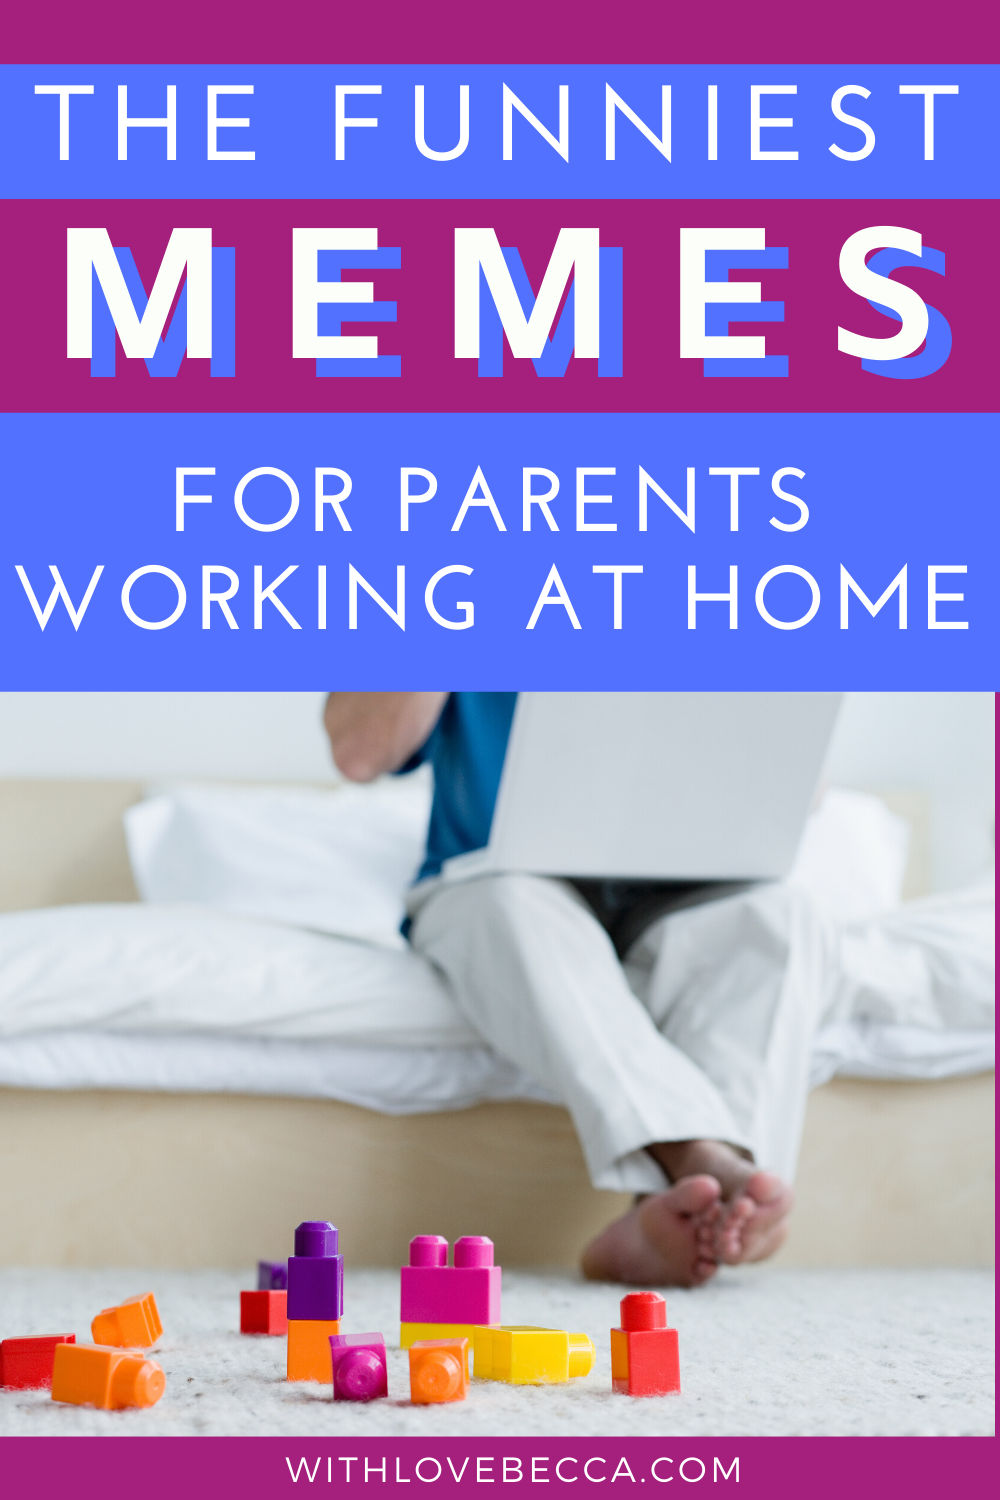 The Funniest Work From Home Memes For Parents With Love Becca Funny Parenting Memes Parenting Humor Memes Working From Home Meme